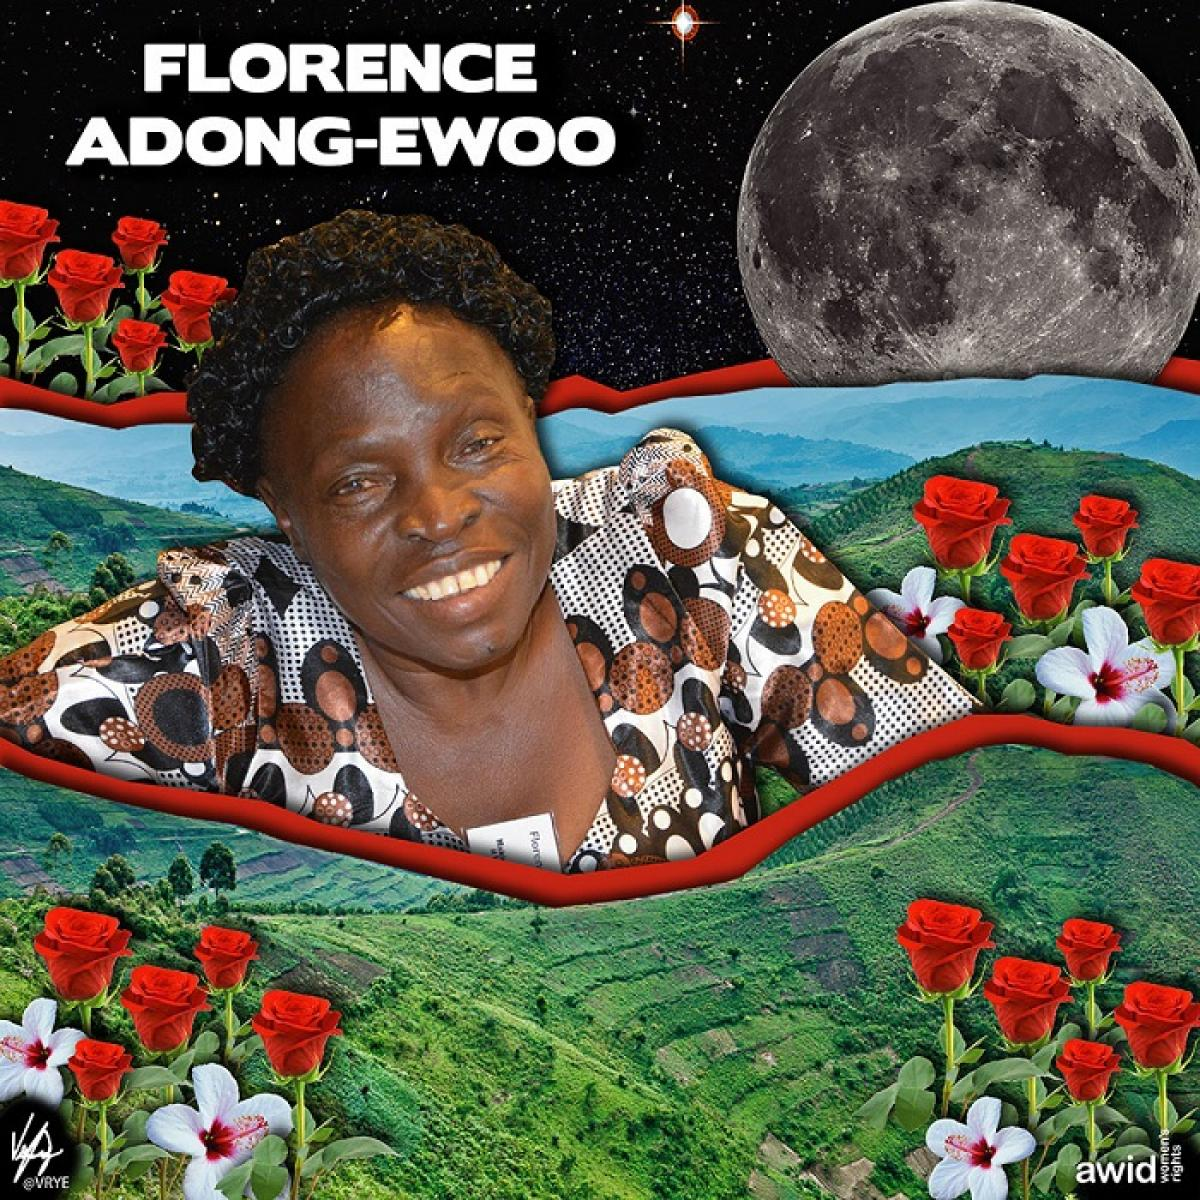 art piece honoring Florence Adong-Ewoo afor the AWID tribute, her picture featured on the forefront, with collage layers of landscape behind her and a full moon